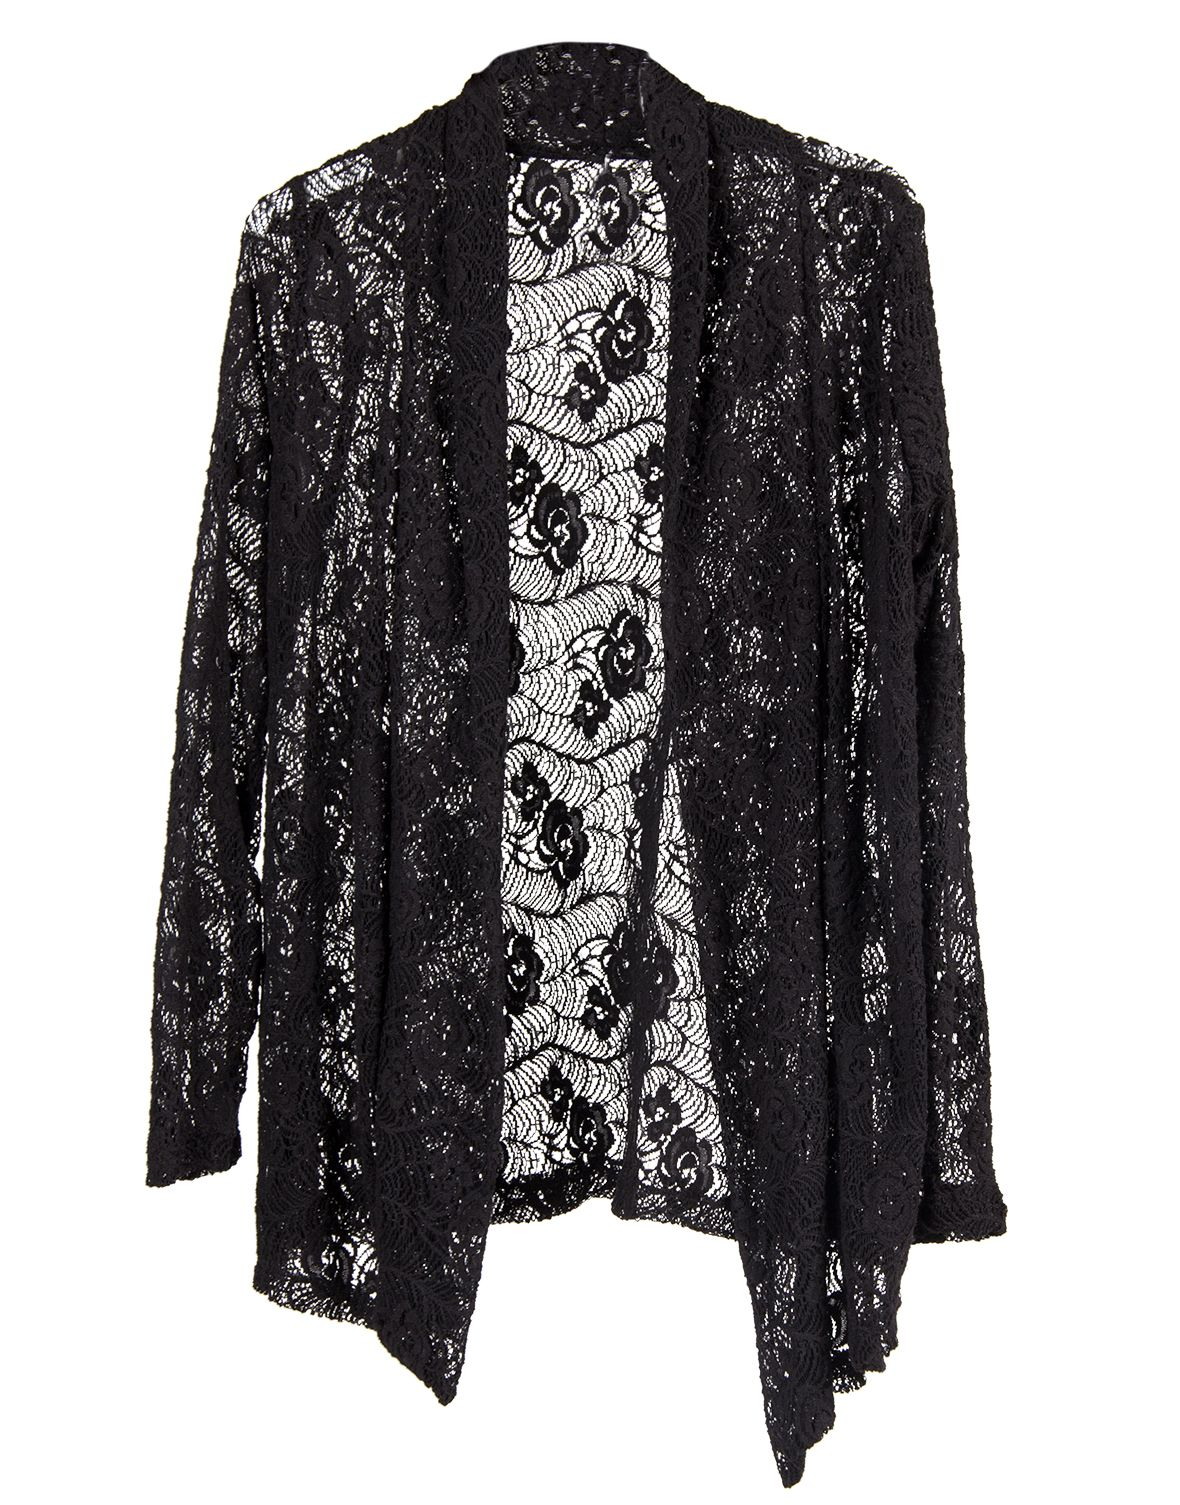 Long Sleeved Lace Cardigan - Black | 2020ave | #NEWOnTheAVE ...